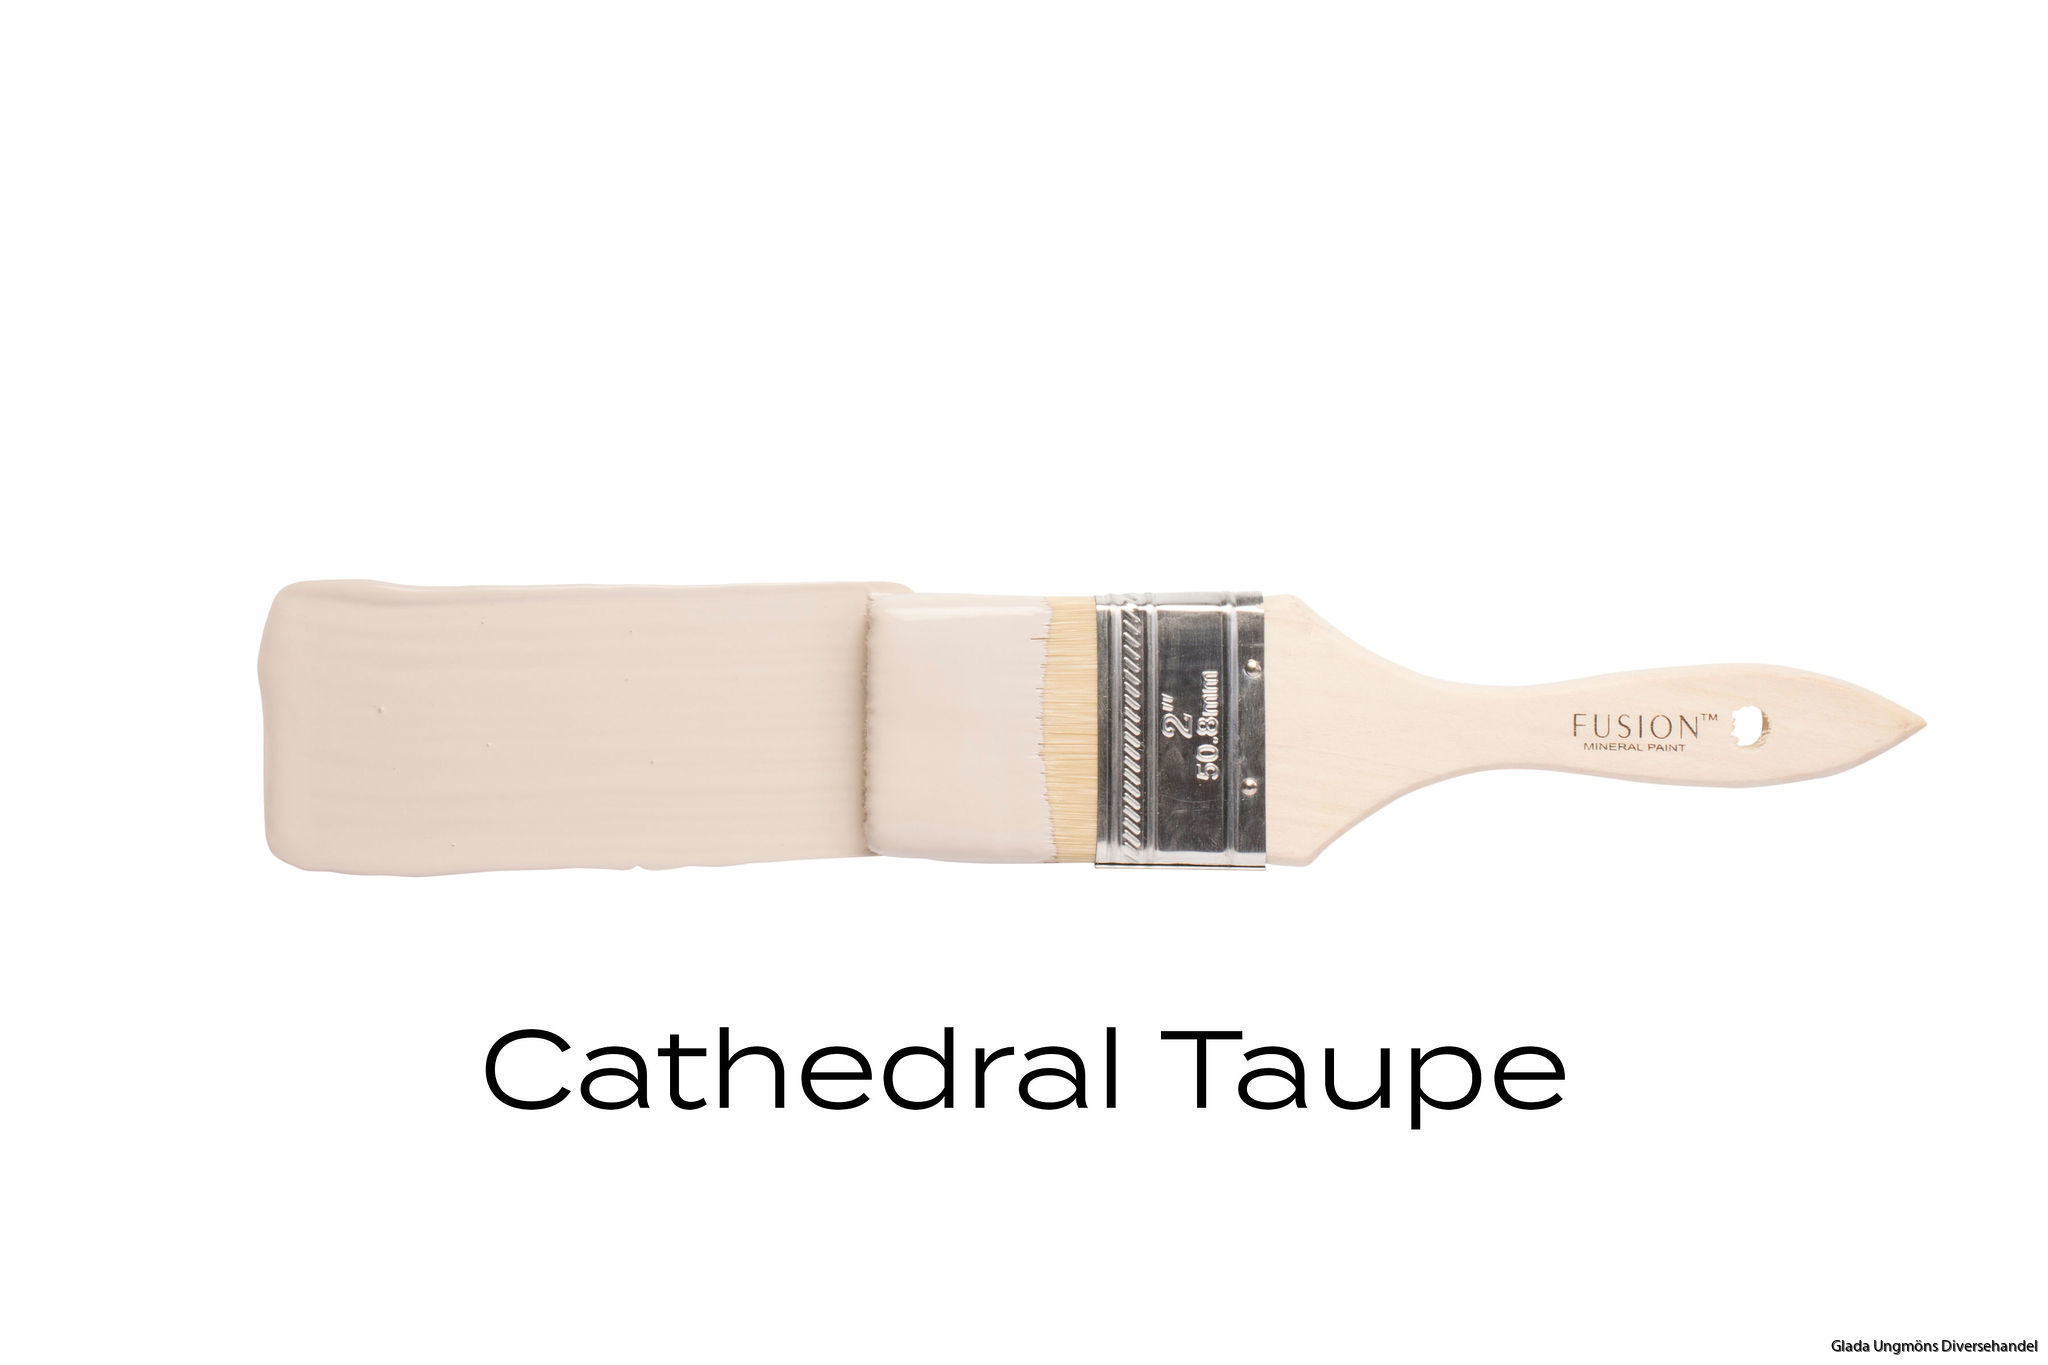 T3CATHEDRALTAUPE